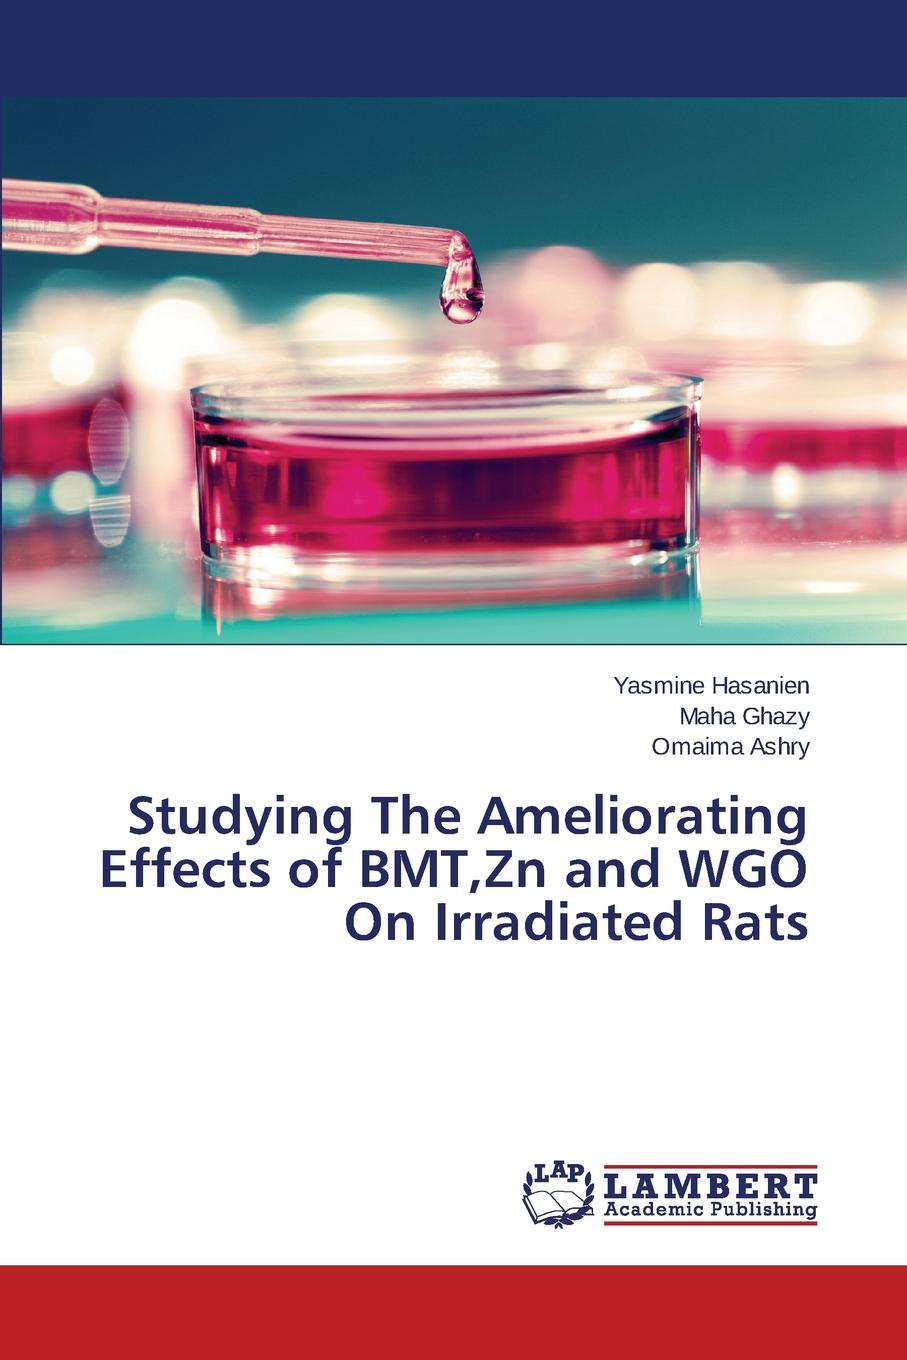 Hasanien Yasmine, Ghazy Maha, Ashry Omaima Studying The Ameliorating Effects of BMT,Zn and WGO On Irradiated Rats proximate analysis of gamma irradiated and non irradiated chickpea